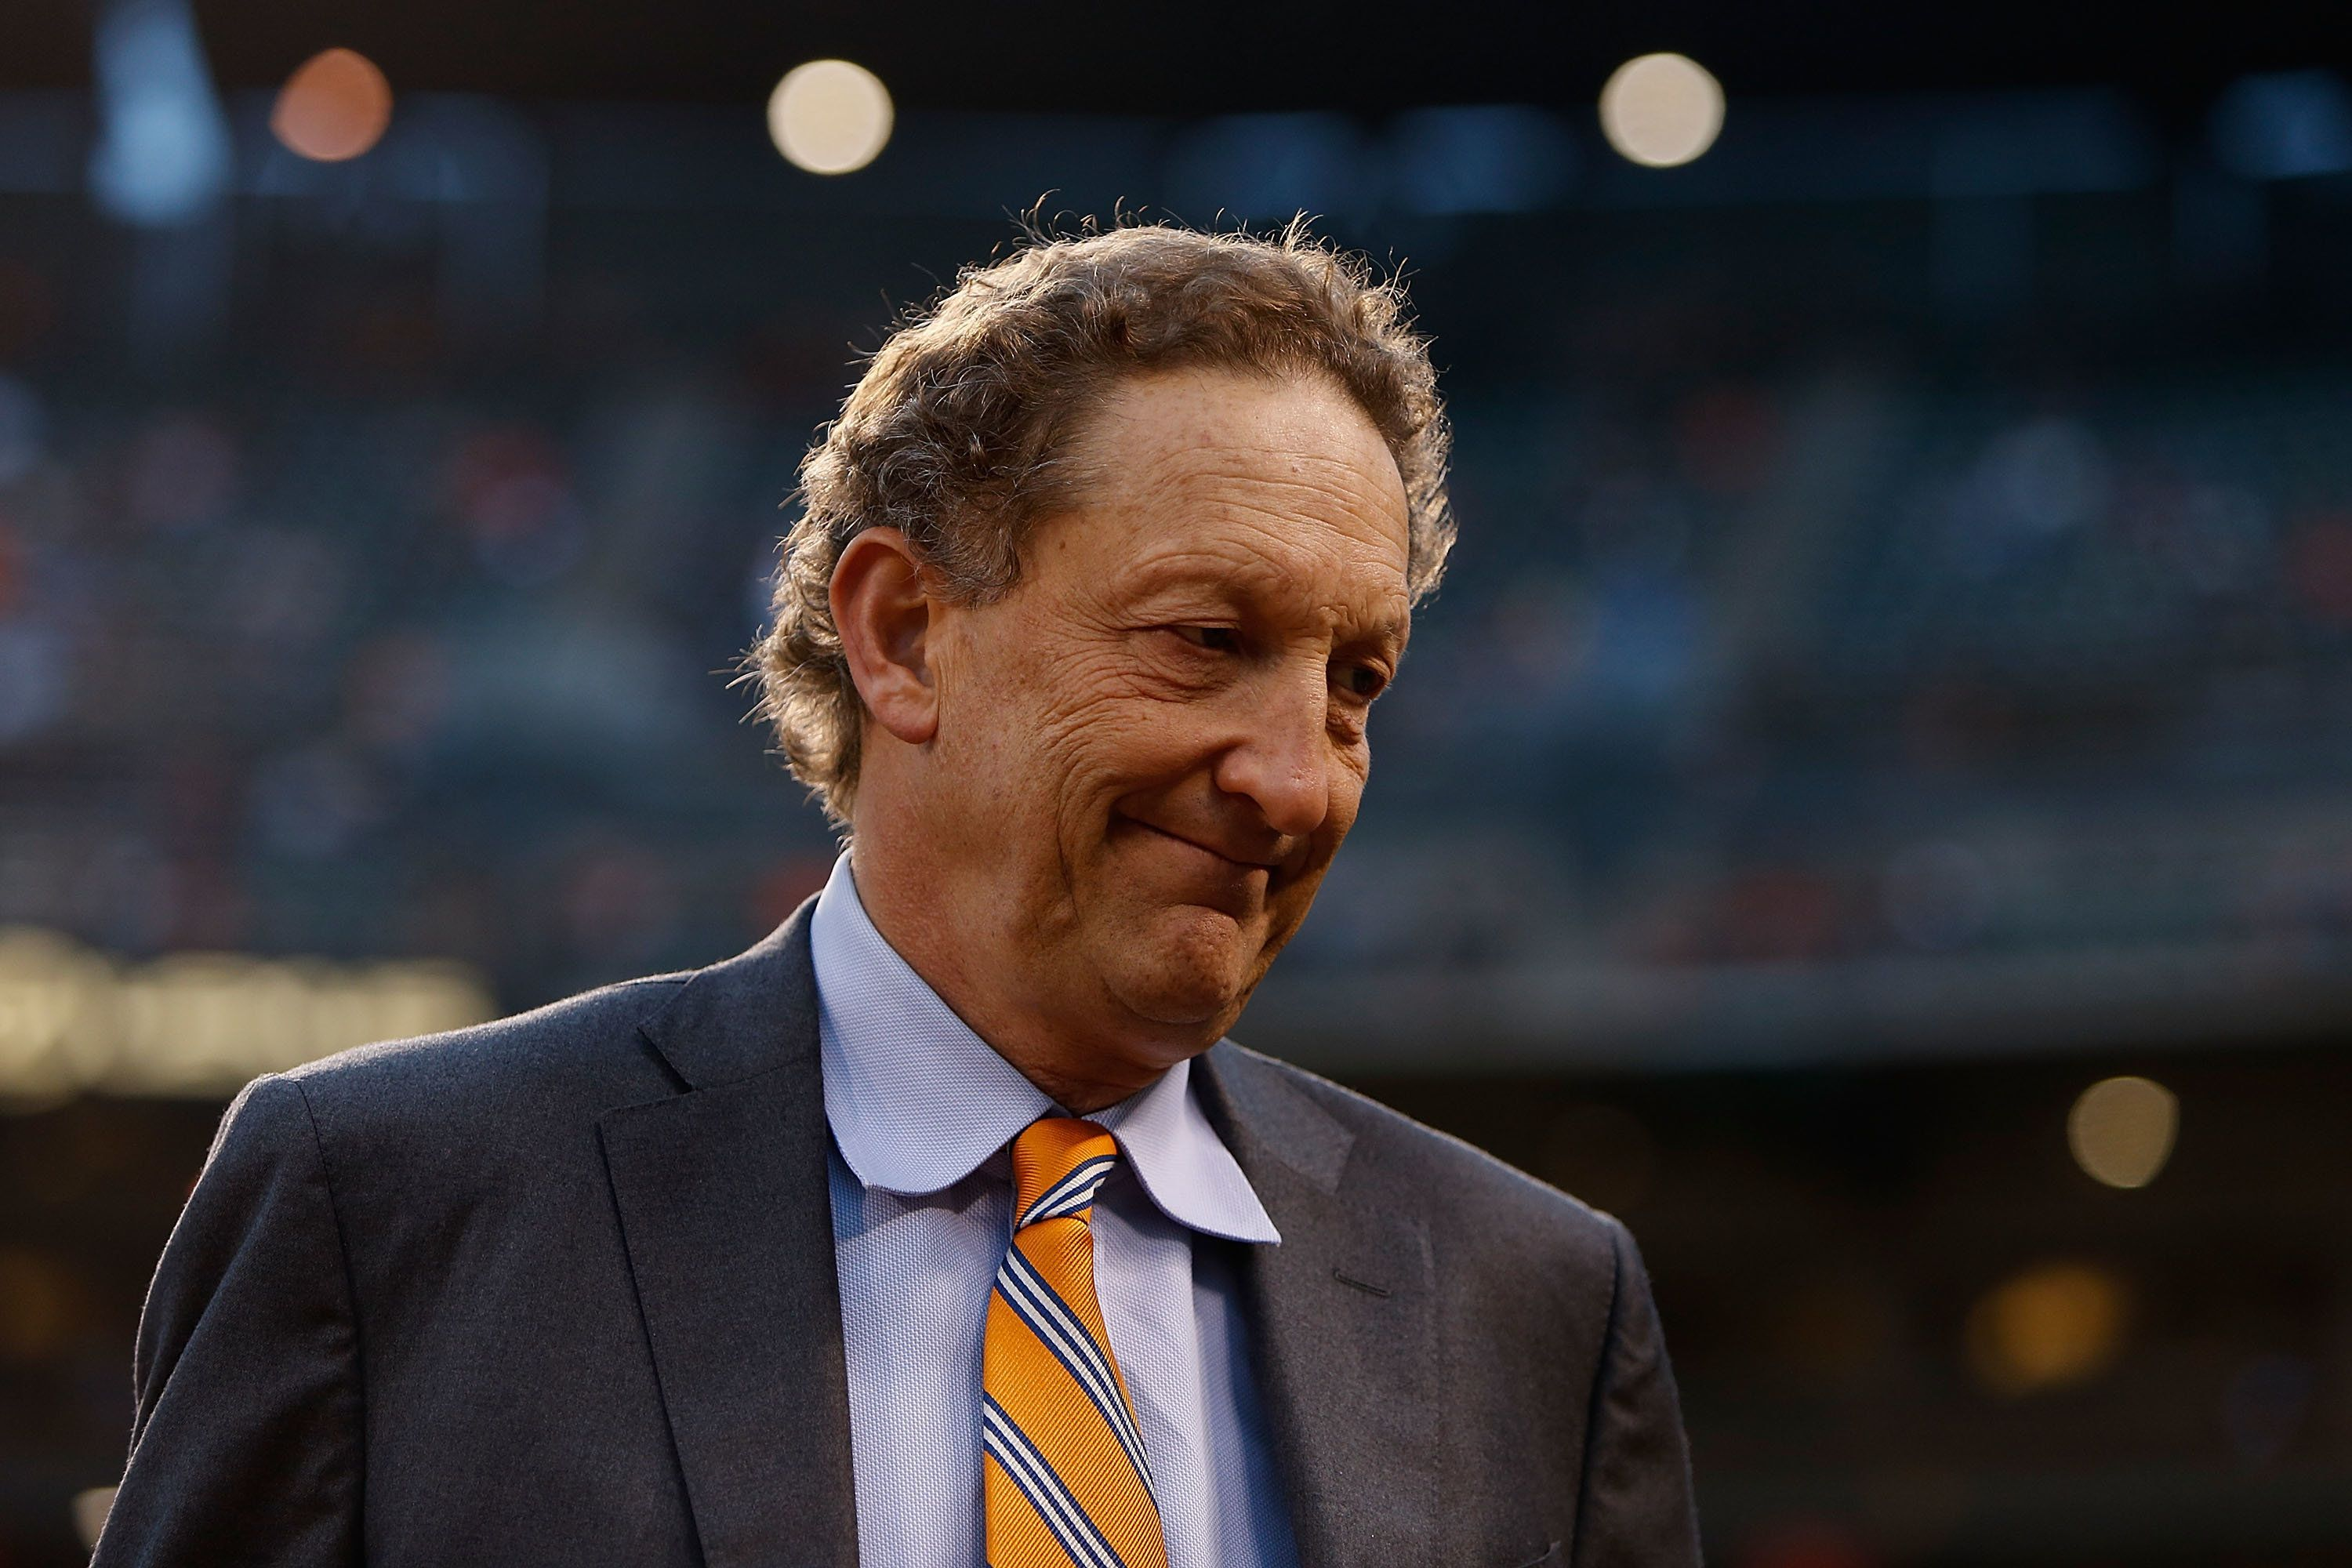 'Unacceptable' conduct by Giants boss warranted suspension: Major League Baseball commissioner